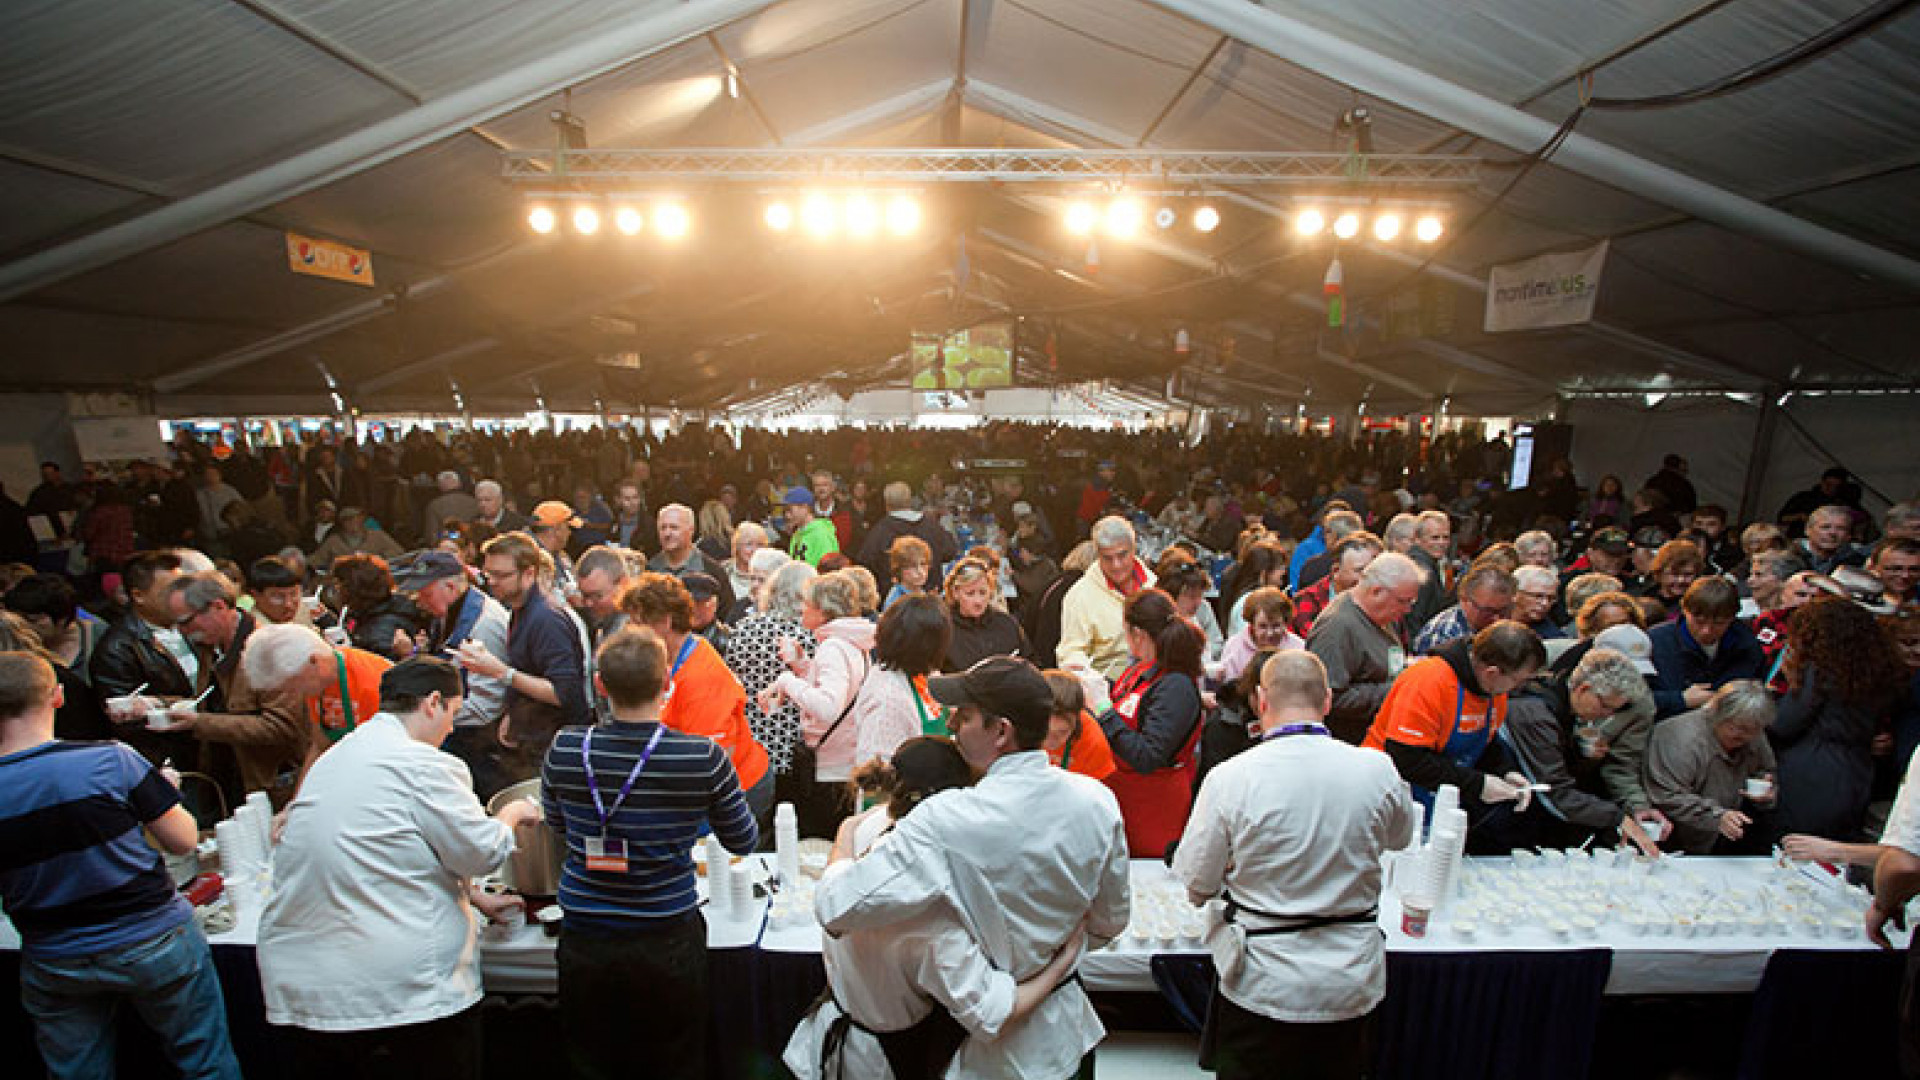 Eat: The PEI International Shellfish Festival